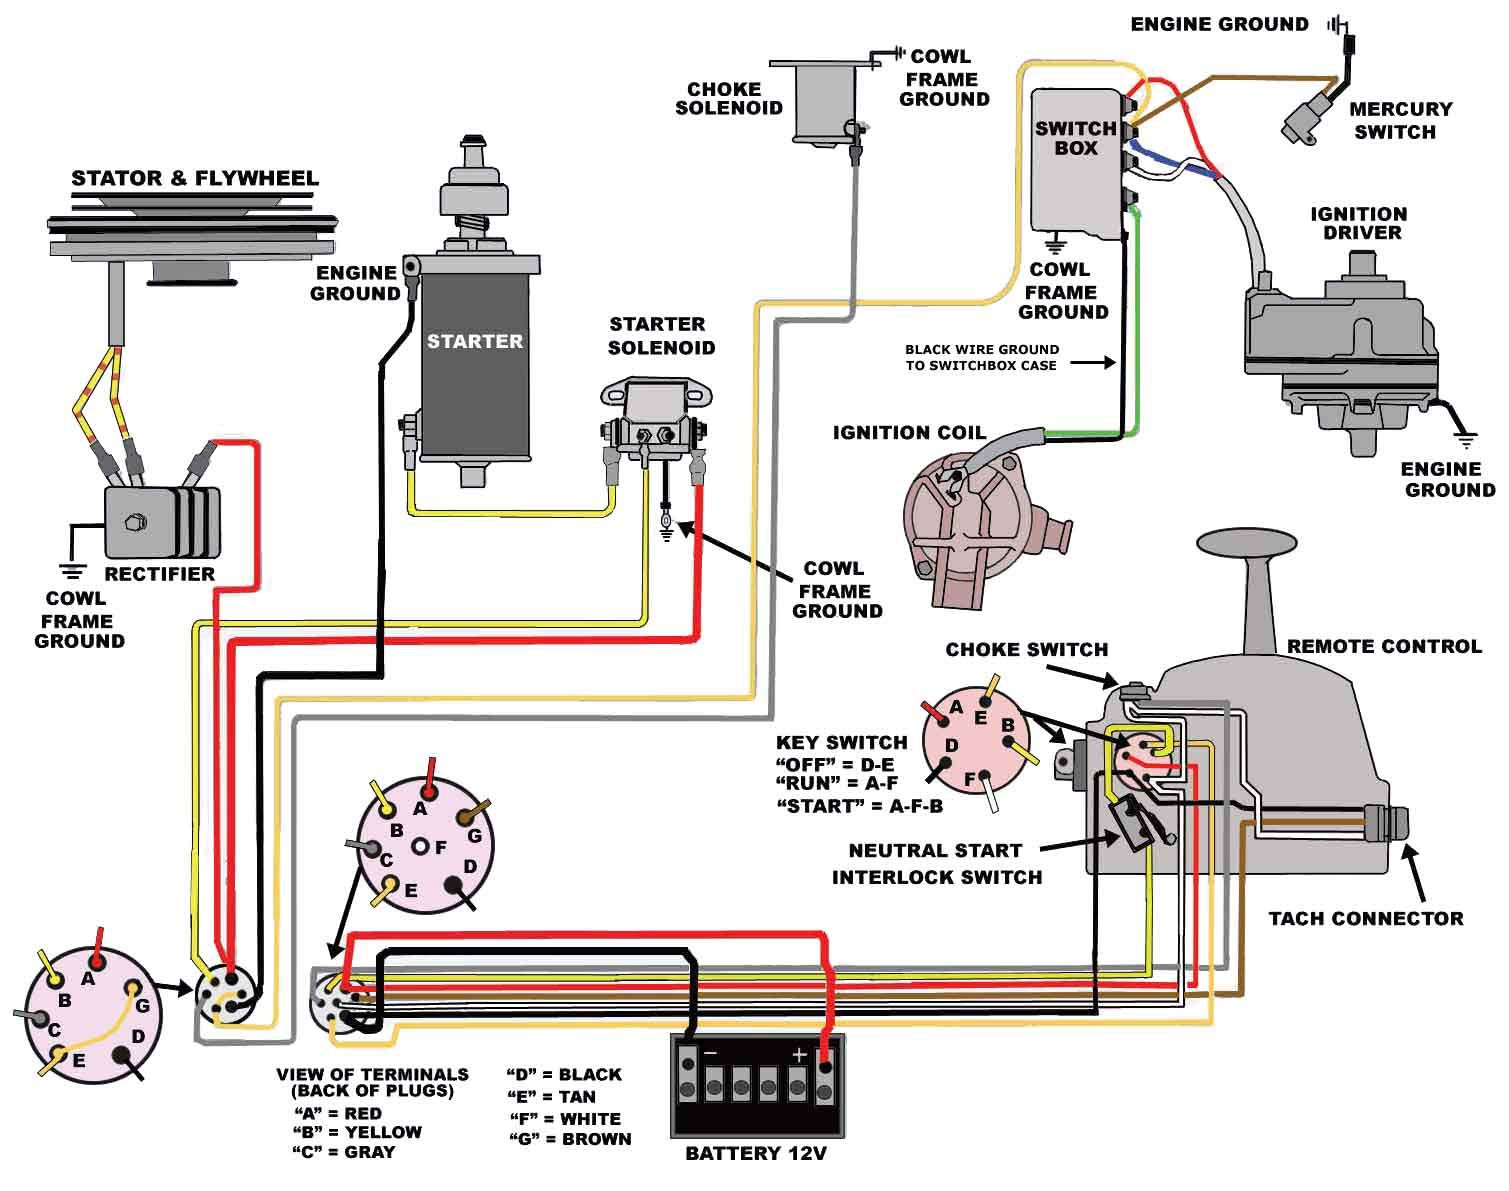 13cfb2d962bcd0c03103625817b7d51d mercury outboard wiring diagram diagram pinterest mercury installation wiring diagram for industry at n-0.co